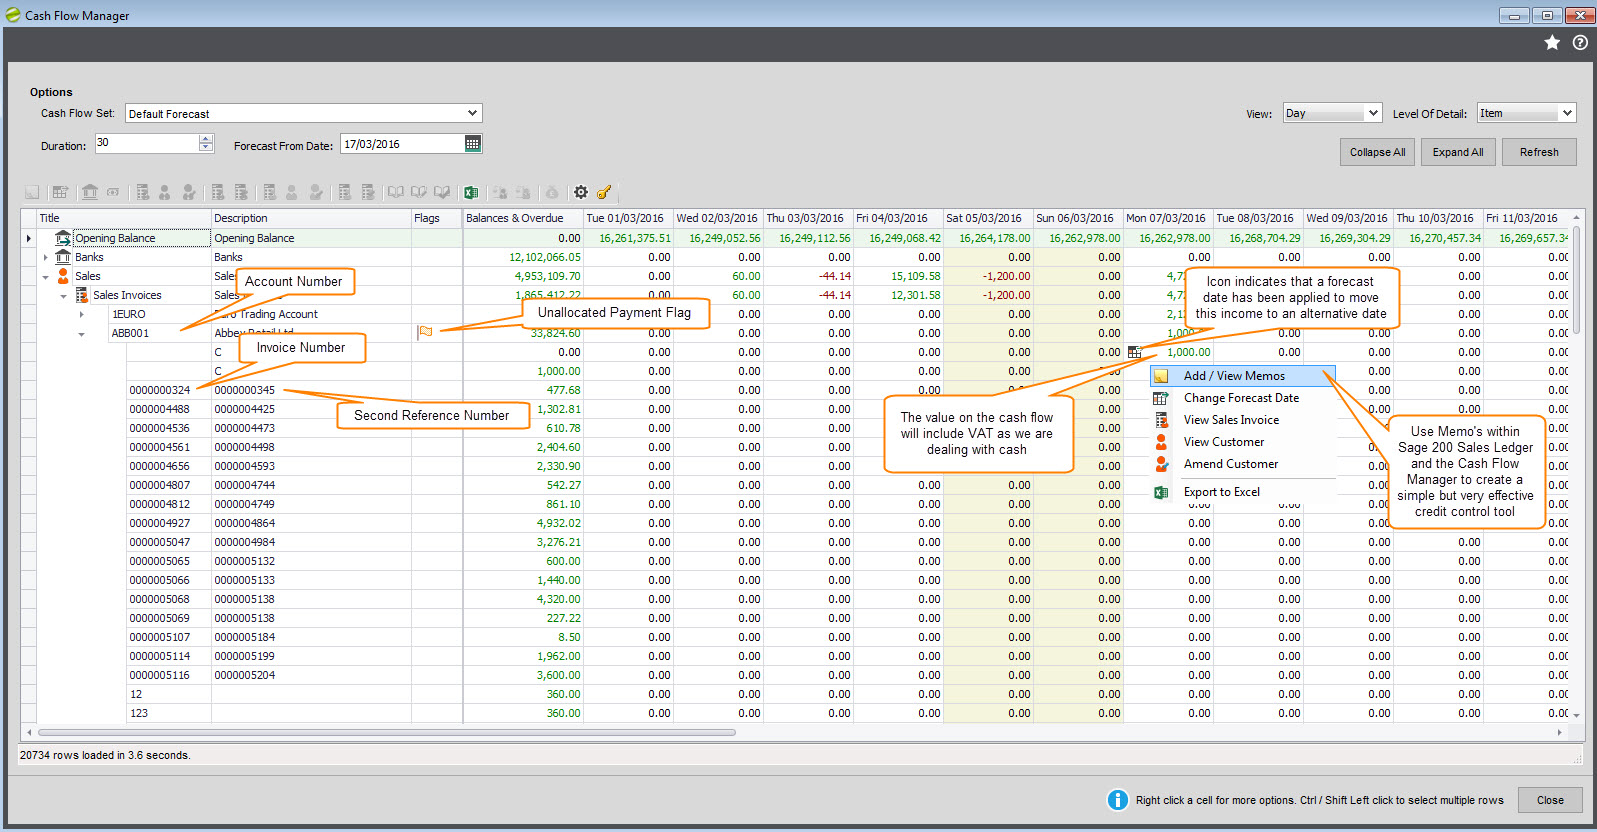 cash flow manager help and user guide sicon cash flow s invoices drill down definition